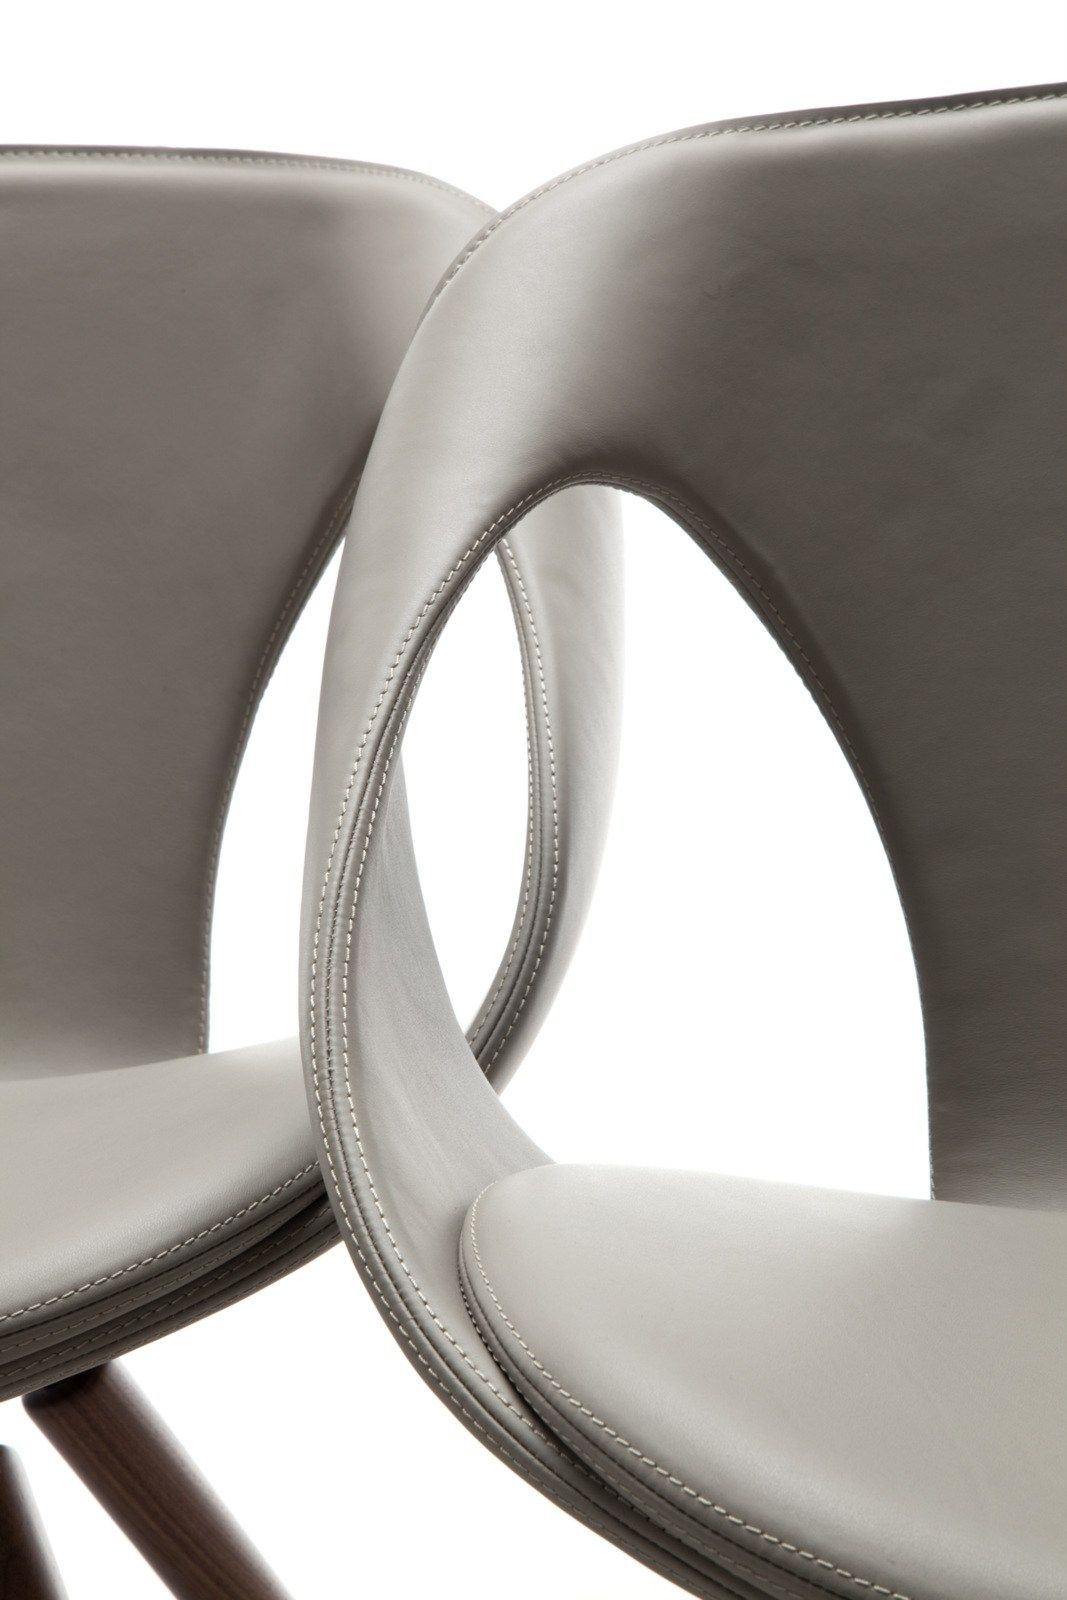 Up Chair By Tonon Furniture Design Inspiration Furniture Chair Chair Design